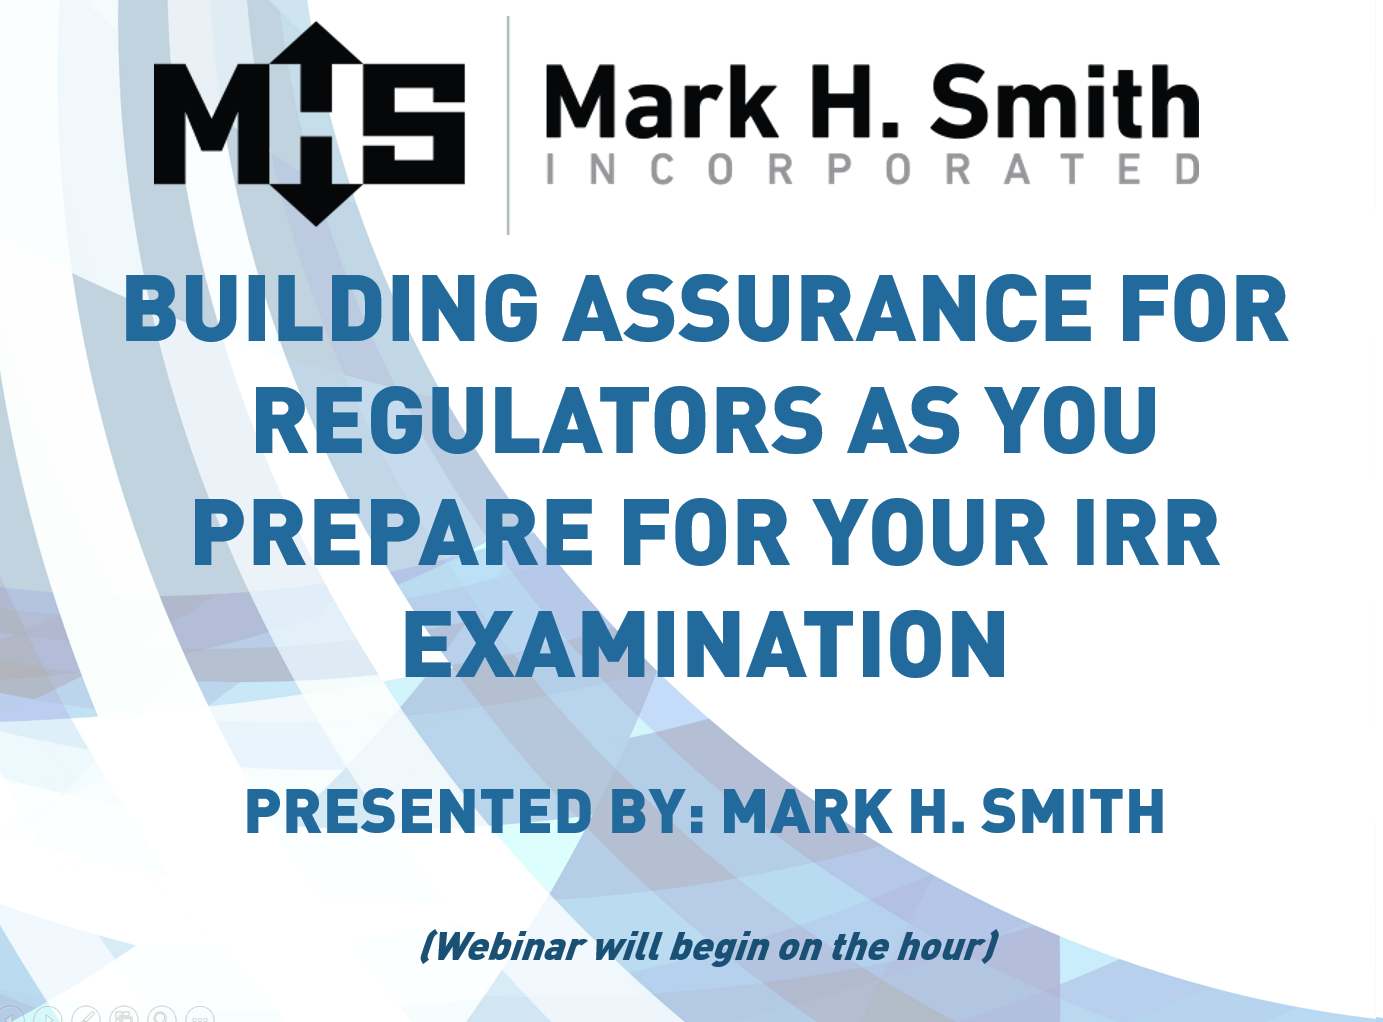 Building Assurance for Regulators as You Prepare For Your IRR Examination